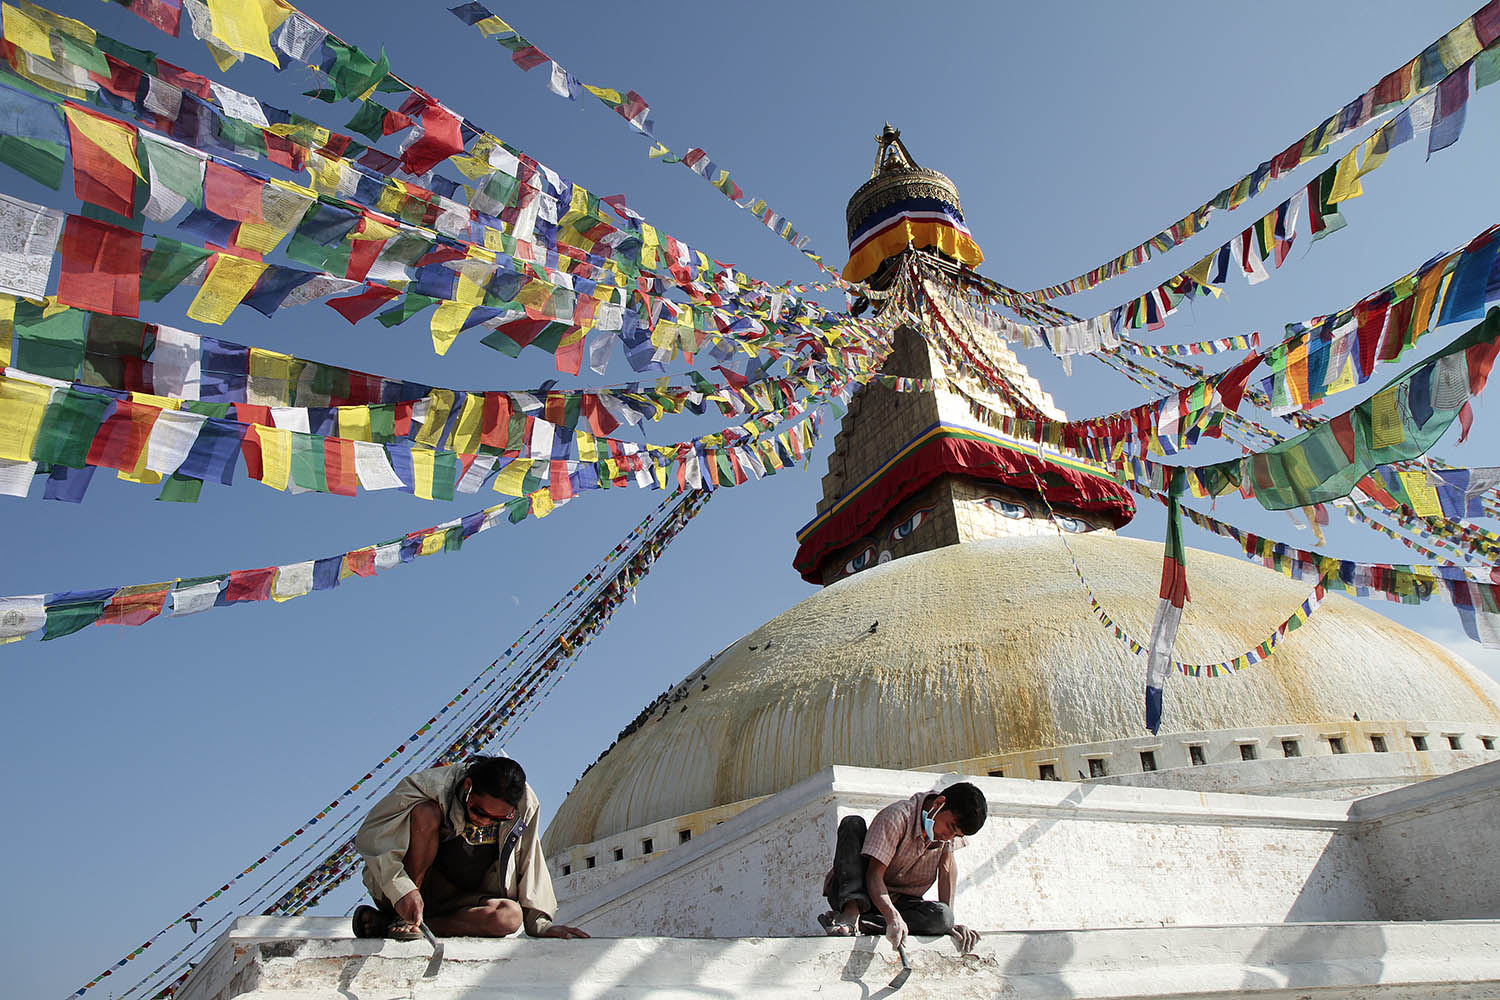 Workers at the Boudhanath in Kathmandu chip paint from the aging facade of the holy Buddhist site. The stupa, one of the largest in the world, had accumulated many layers of paint over its existence.